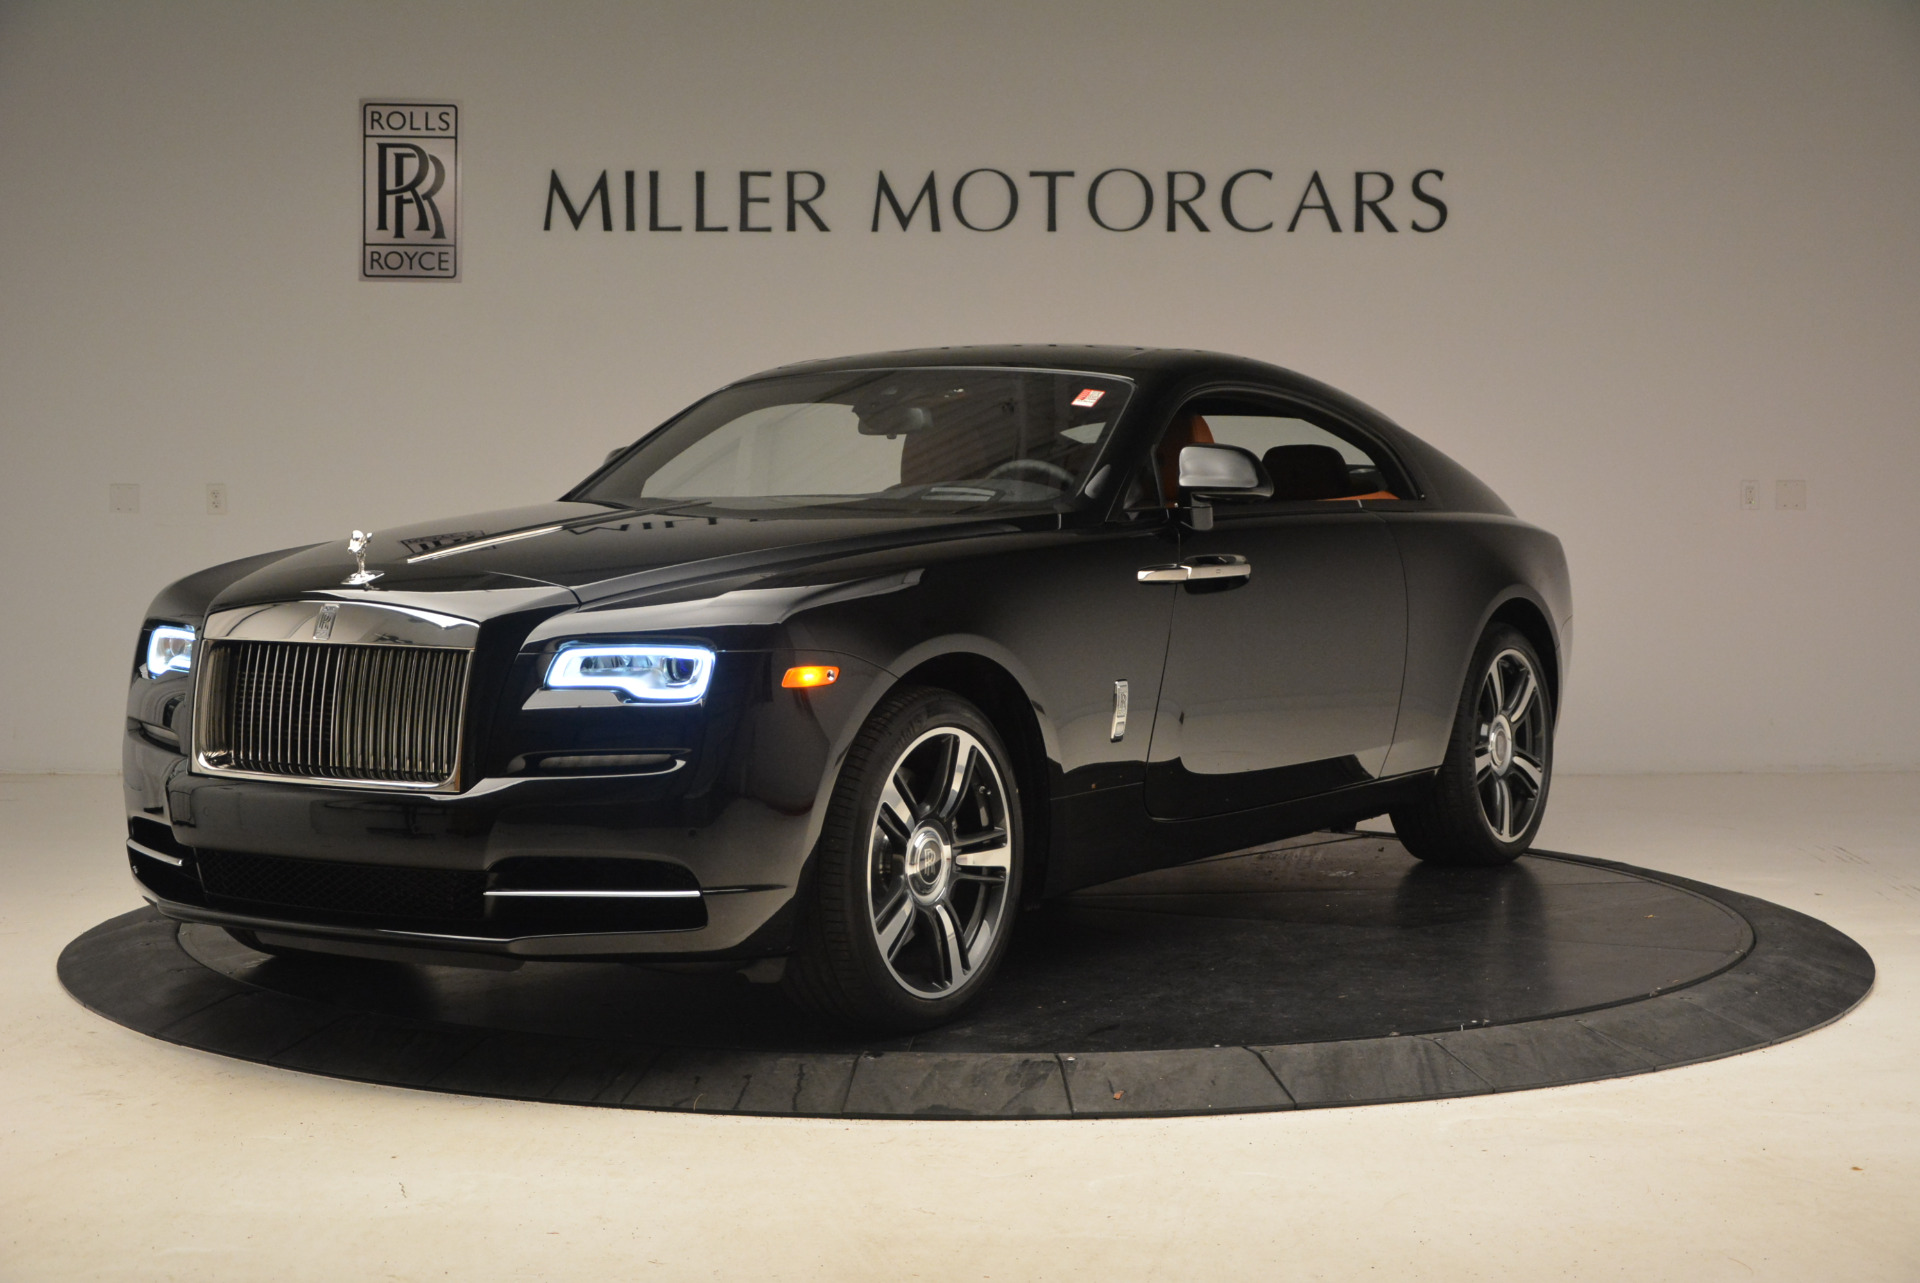 New 2018 Rolls-Royce Wraith for sale Sold at Bentley Greenwich in Greenwich CT 06830 1